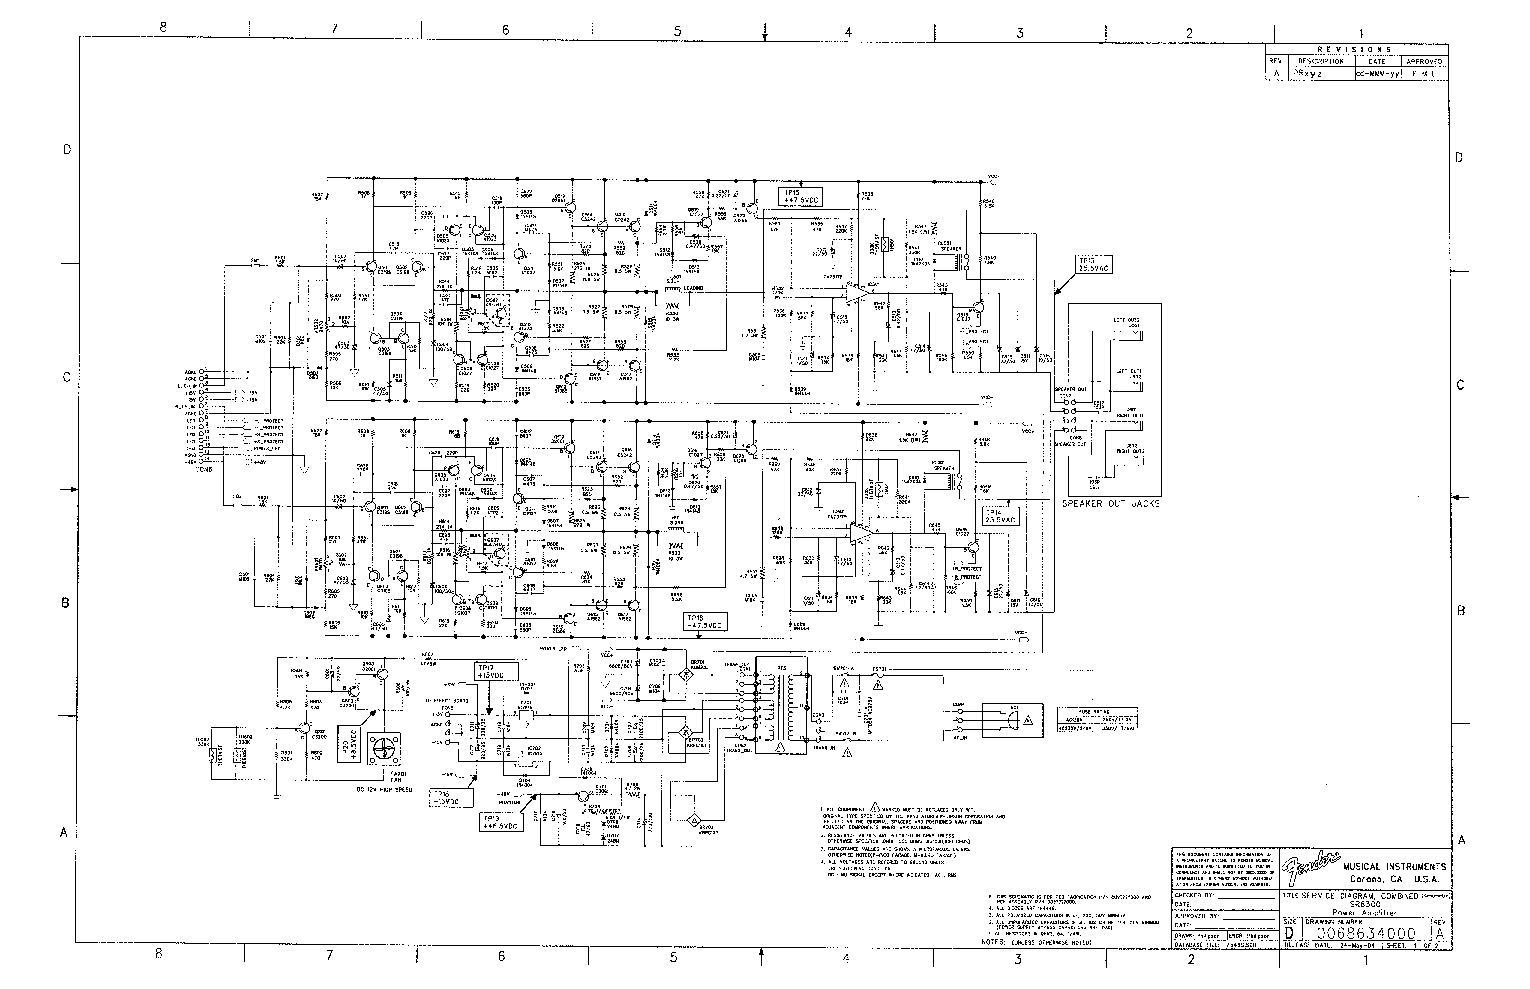 Schematic 6g2 Powerking